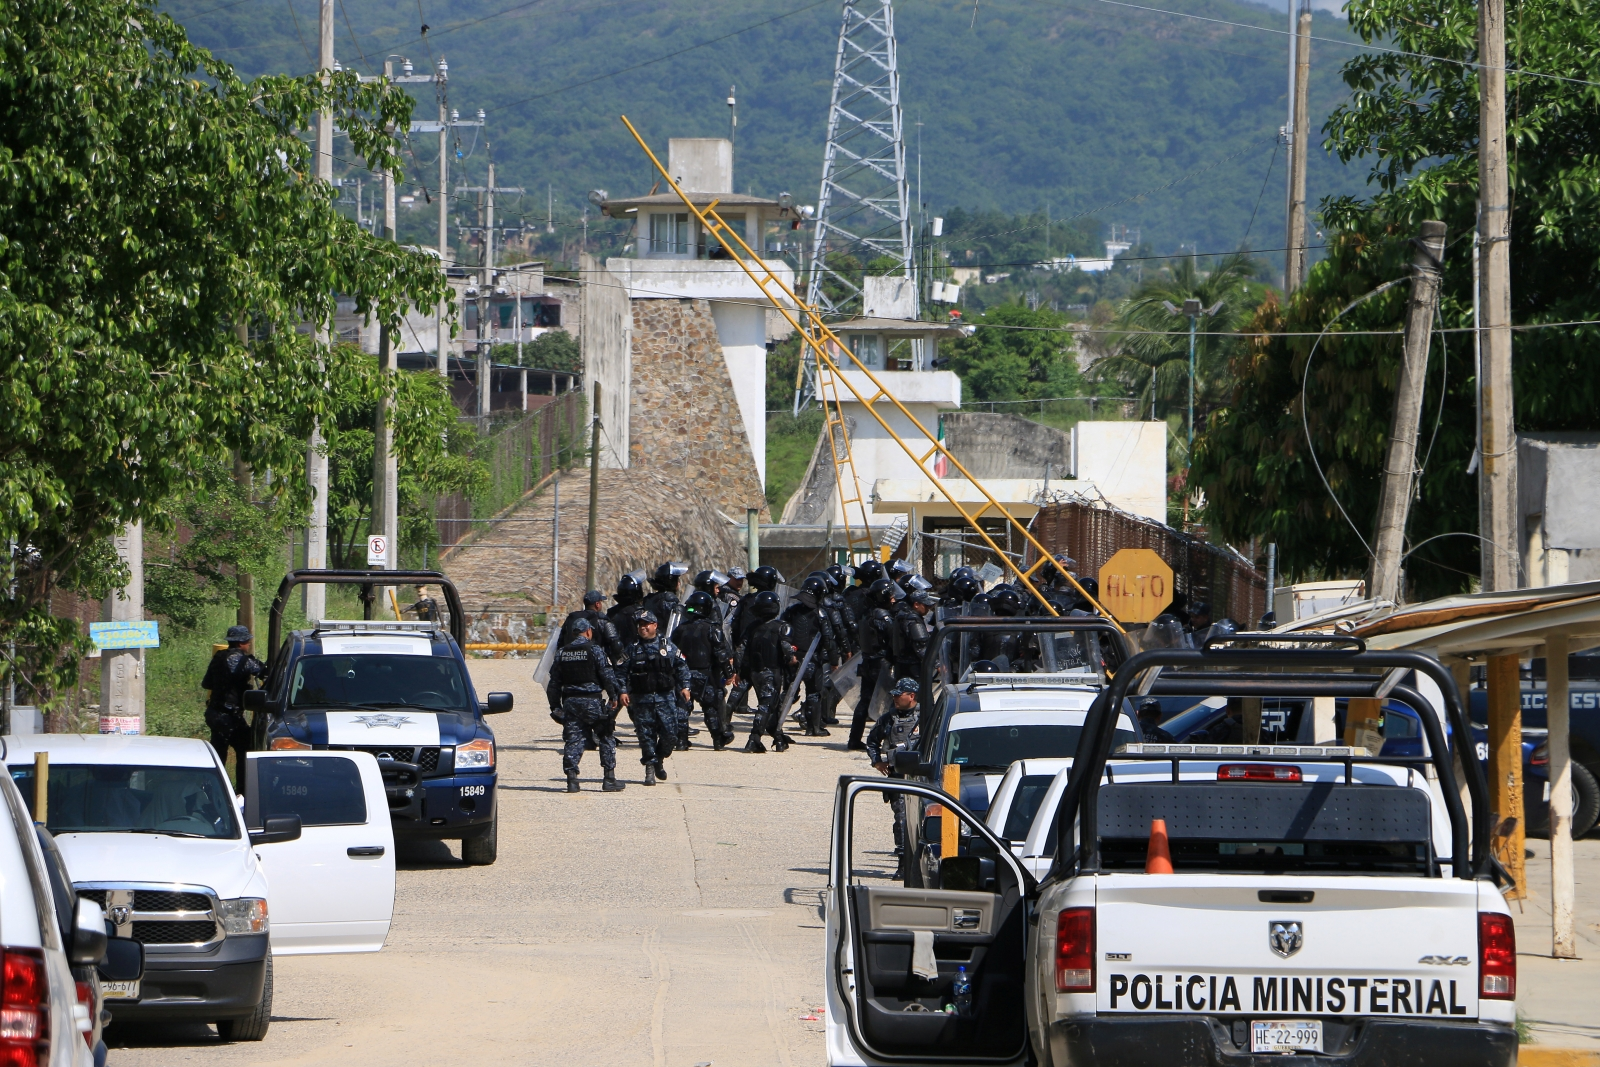 At least 28 dead in brutal gang fight in Mexico prison